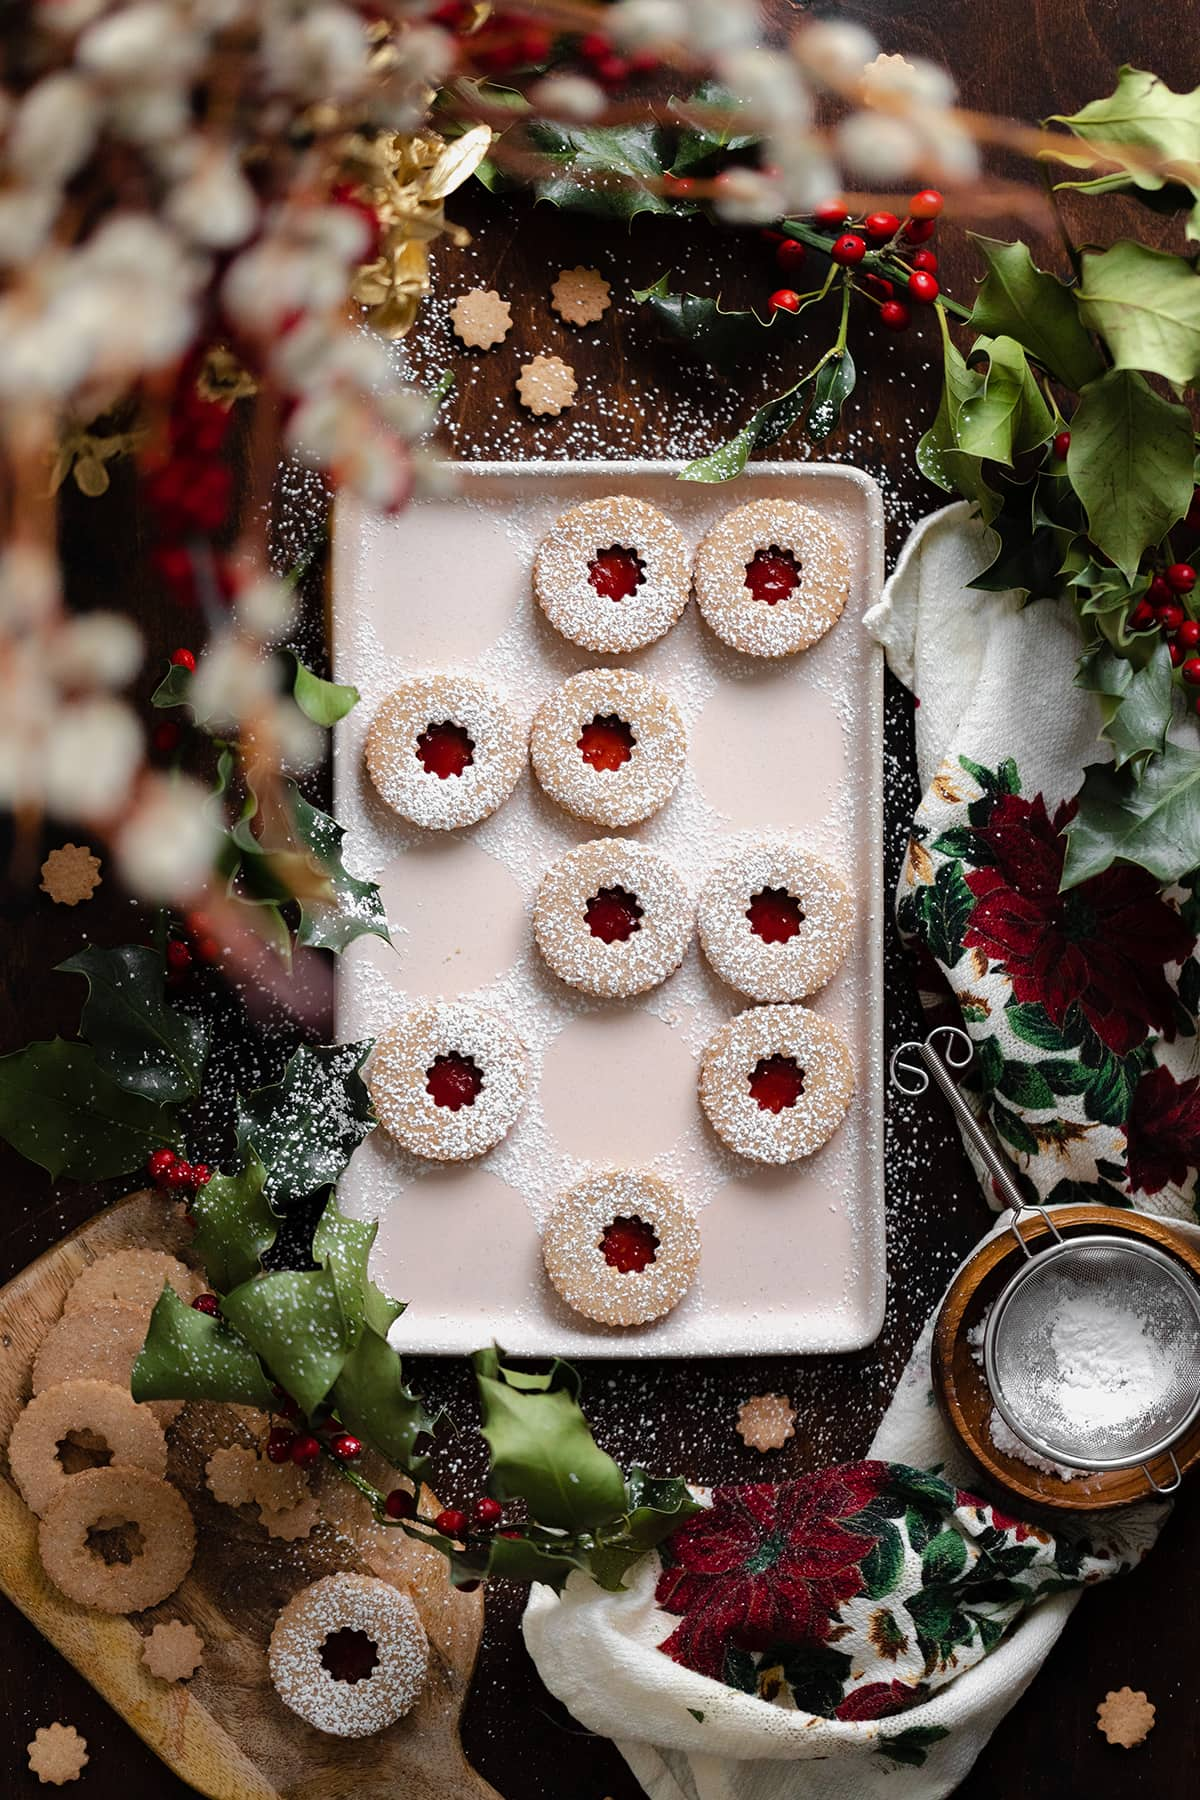 Gluten-Free Linzer Cookies with raspberry jam and a dusting of powdered sugar on a beige plate. Decorated with Christmas decorations all around the plate